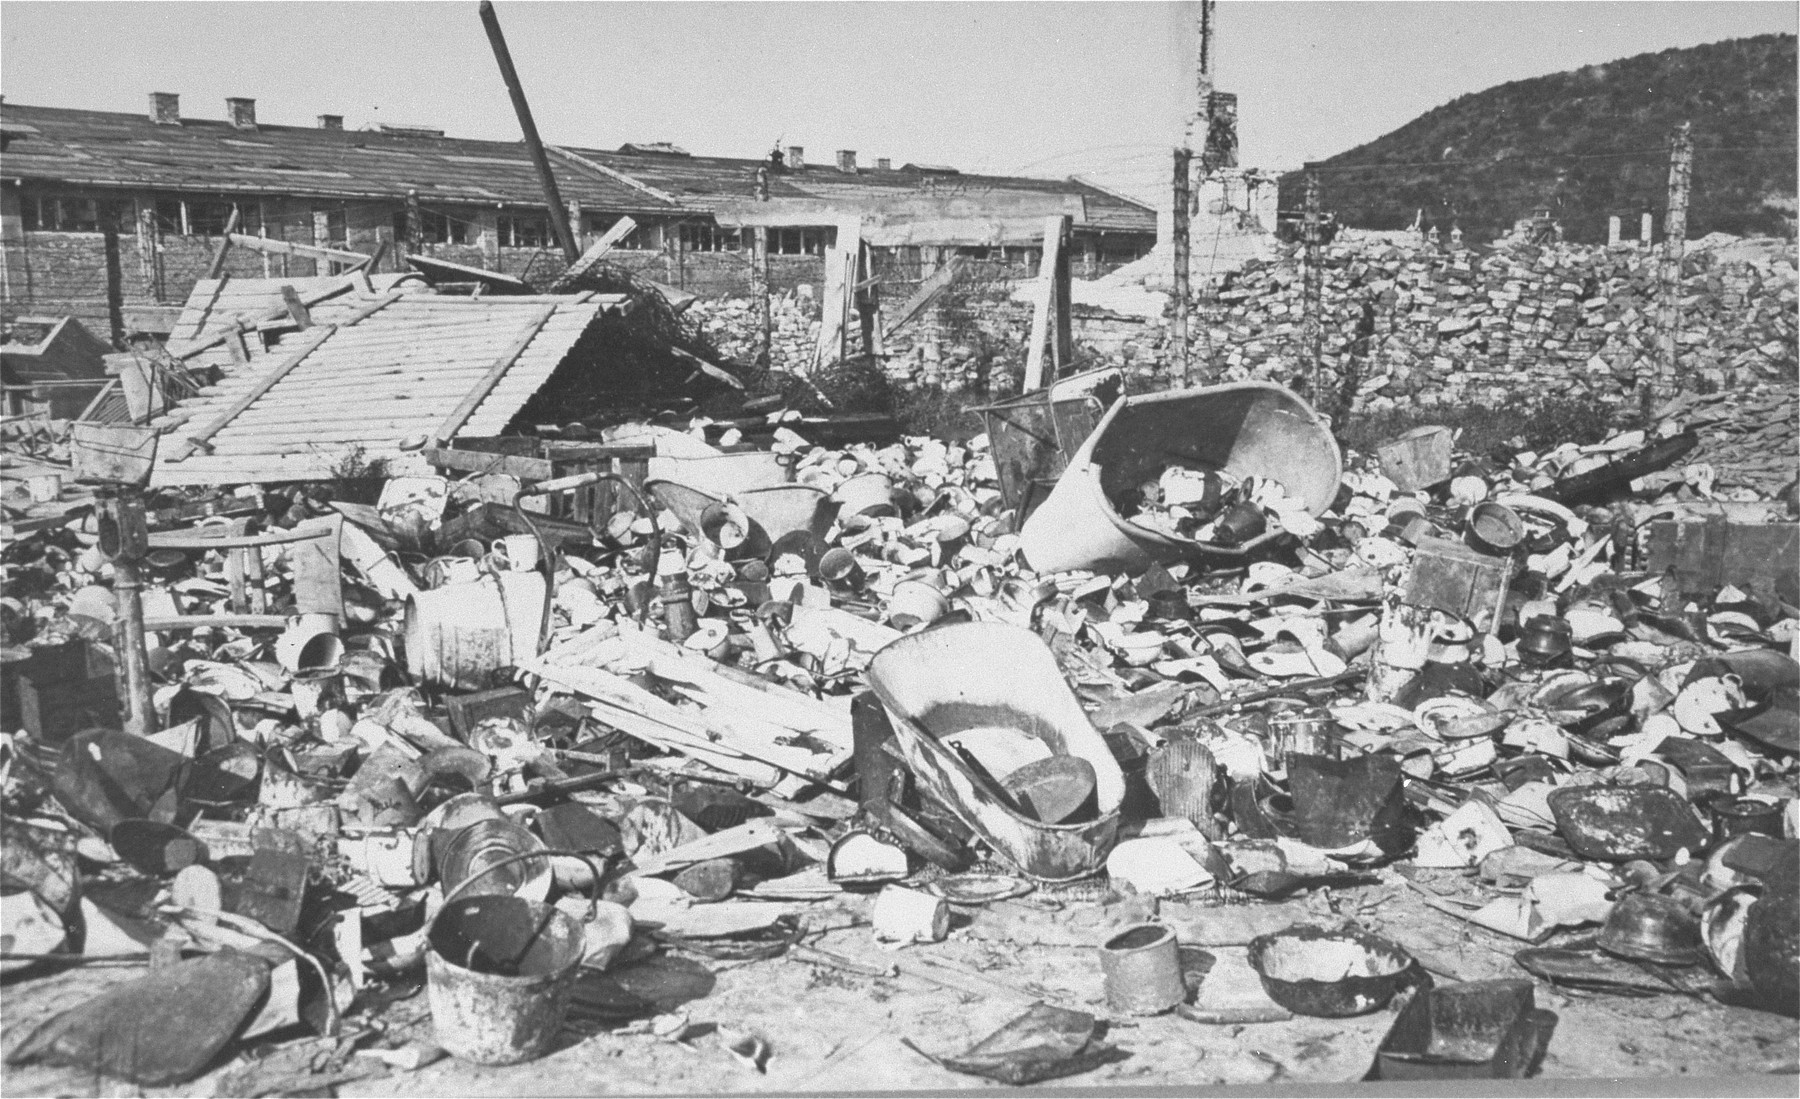 Prisoners' personal effects found in Janowska by the Red Army.